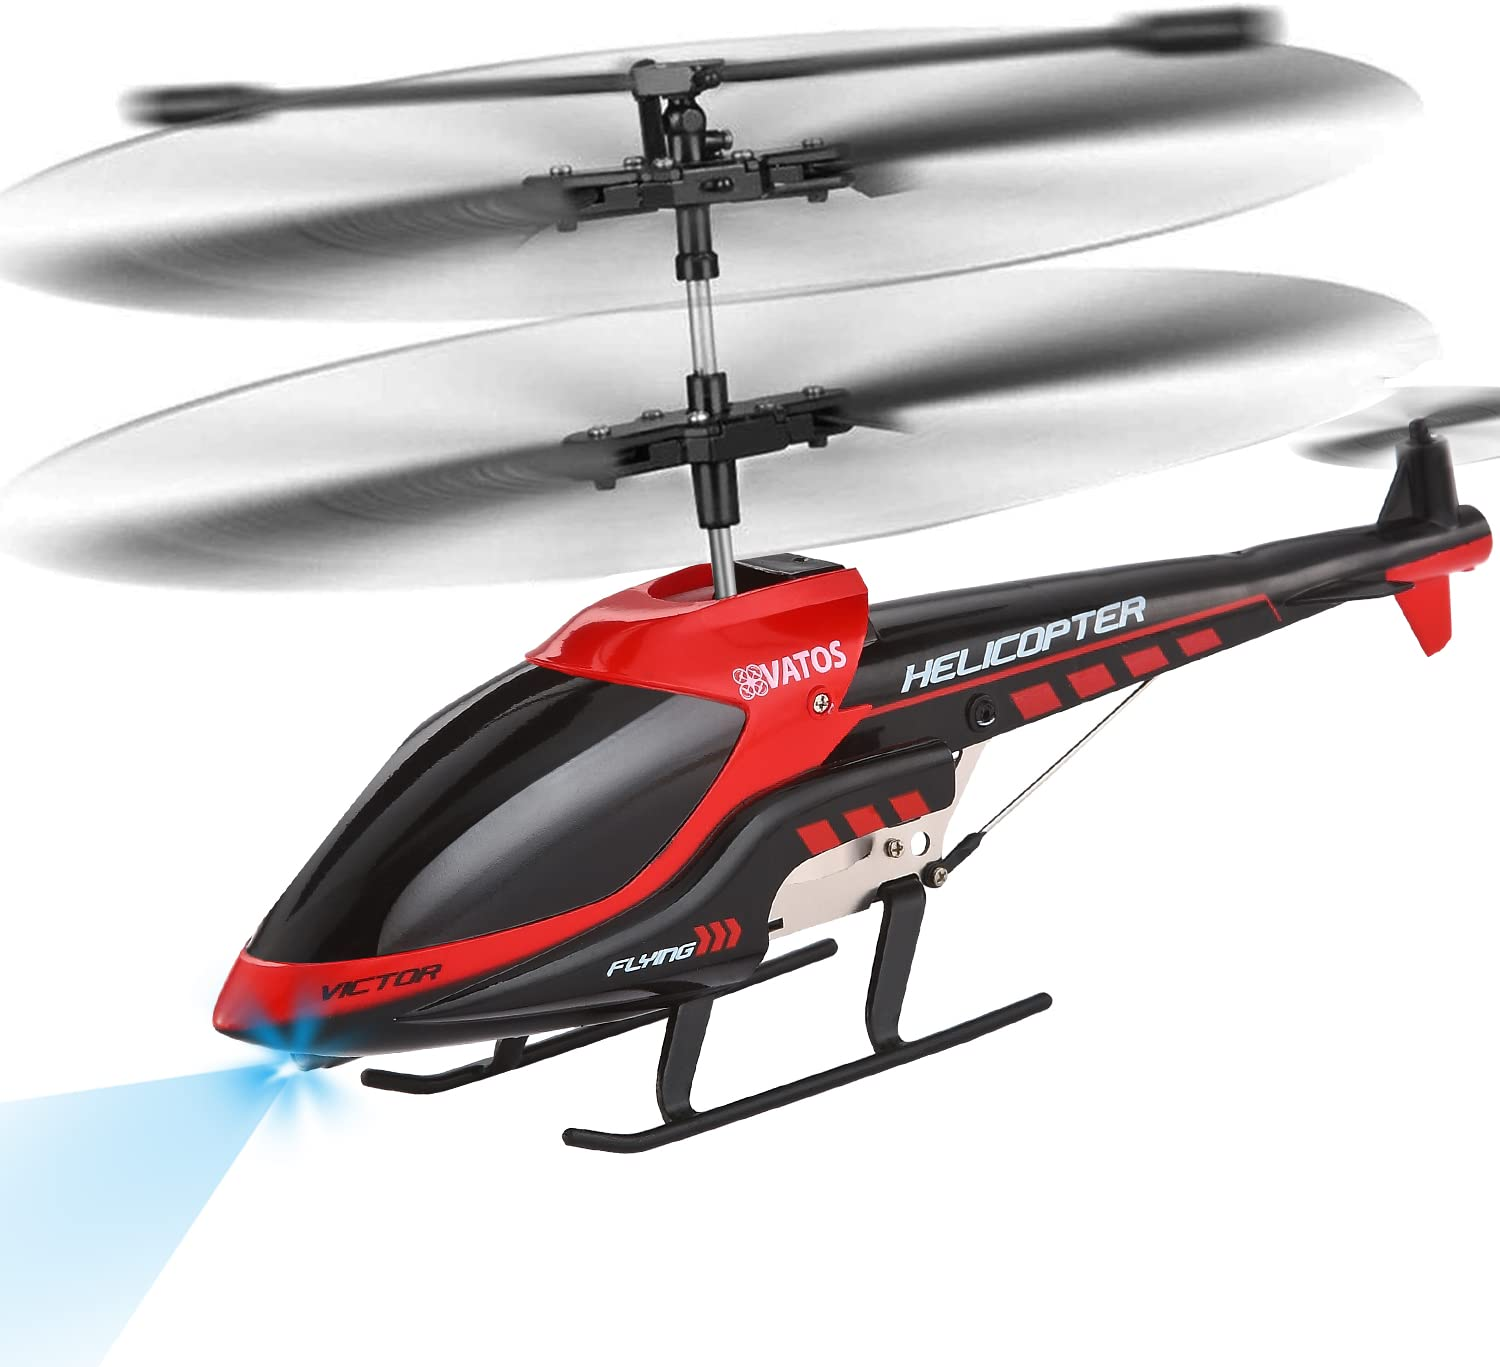 VATOS Remote Control Helicopter for Kids